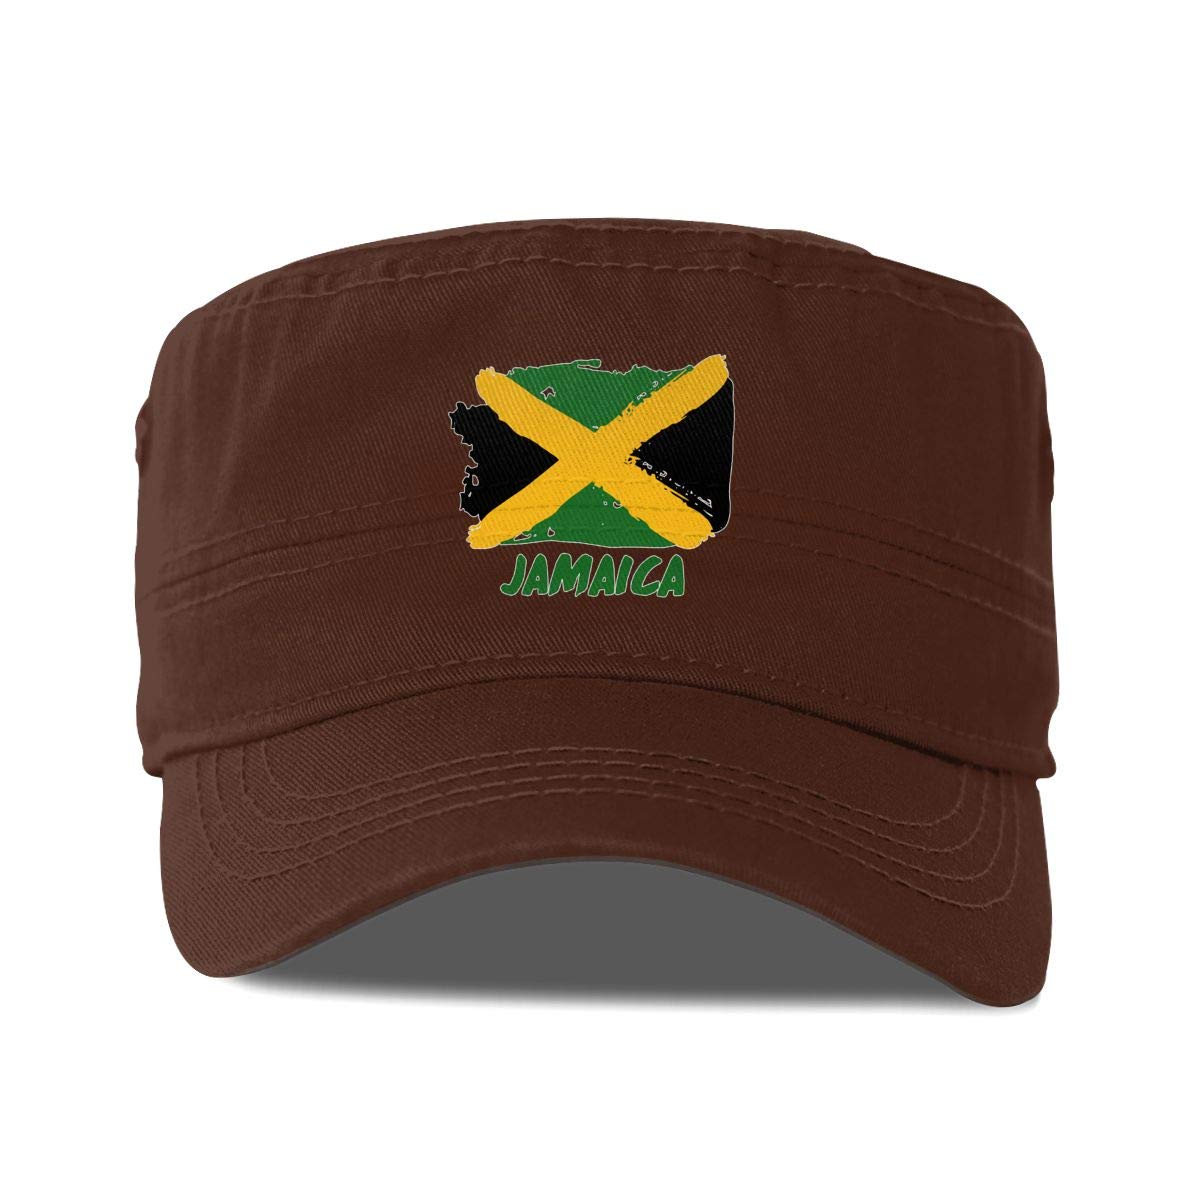 Jamaican Flag Unisex Adult Cotton Military Army Cap Flat Top Hat